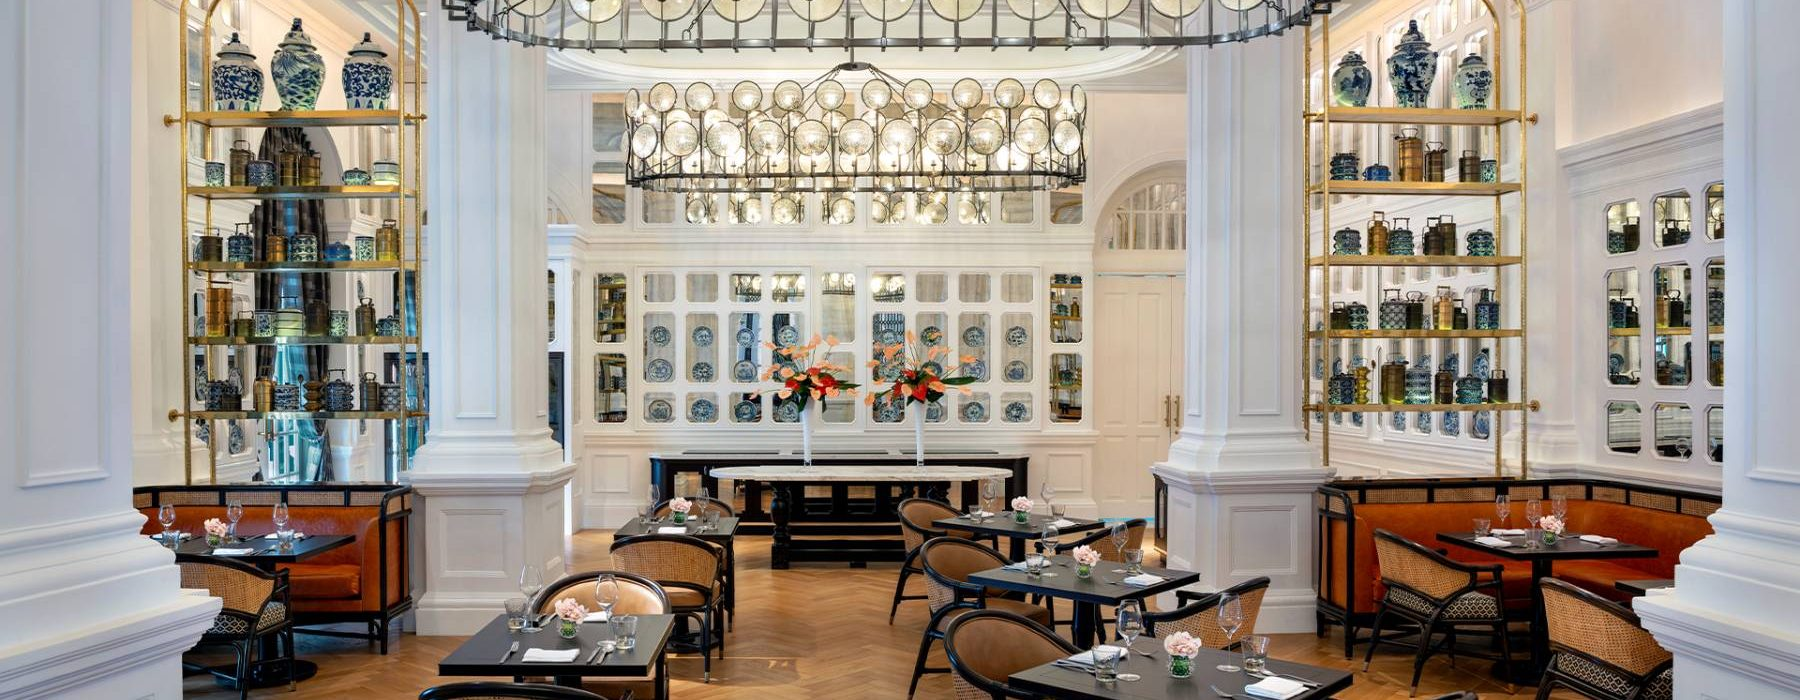 Raffles Singapore - Restaurants & Bars